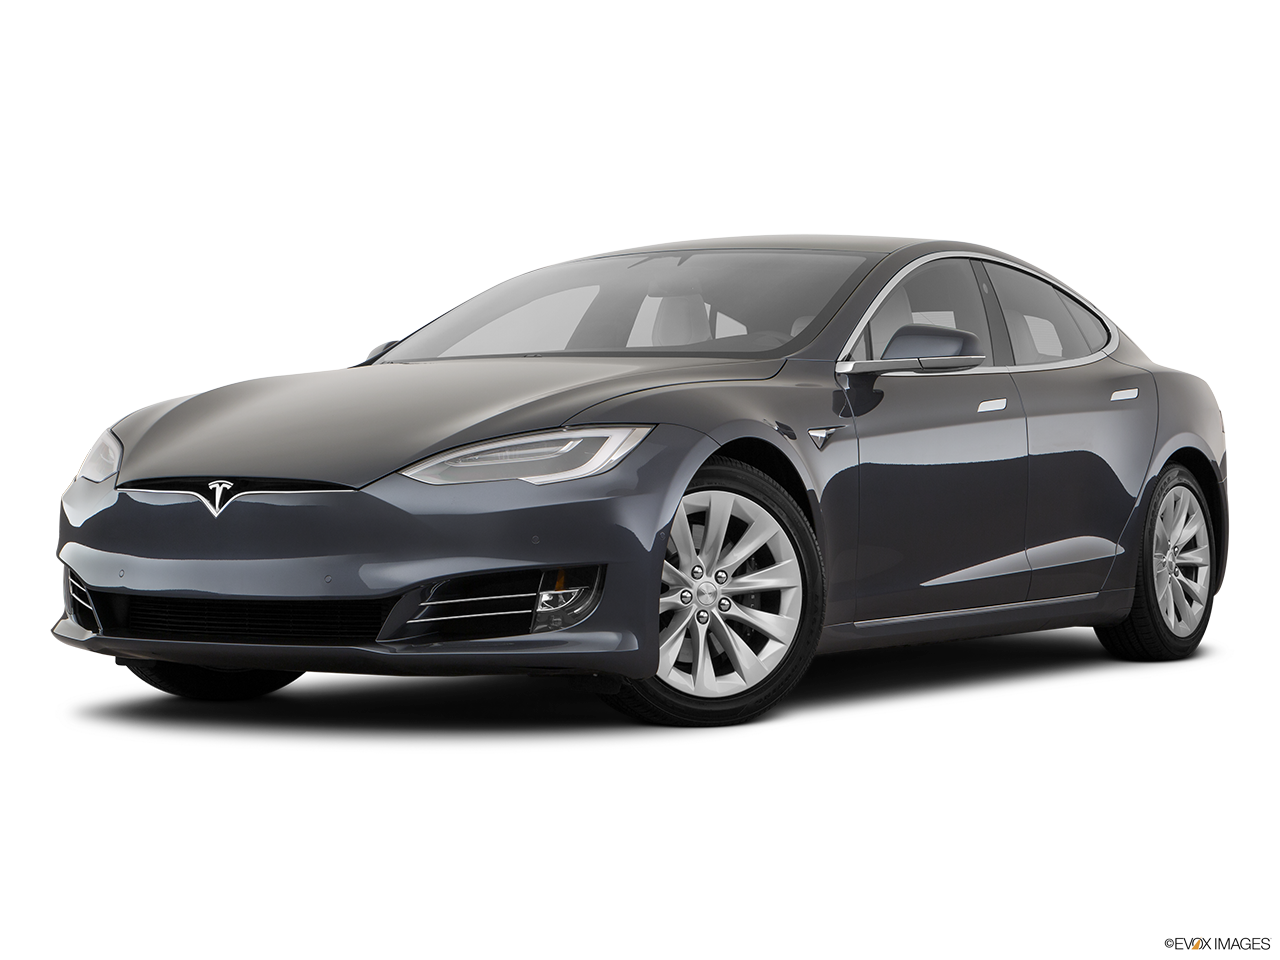 Three quart view of the Tesla Model S